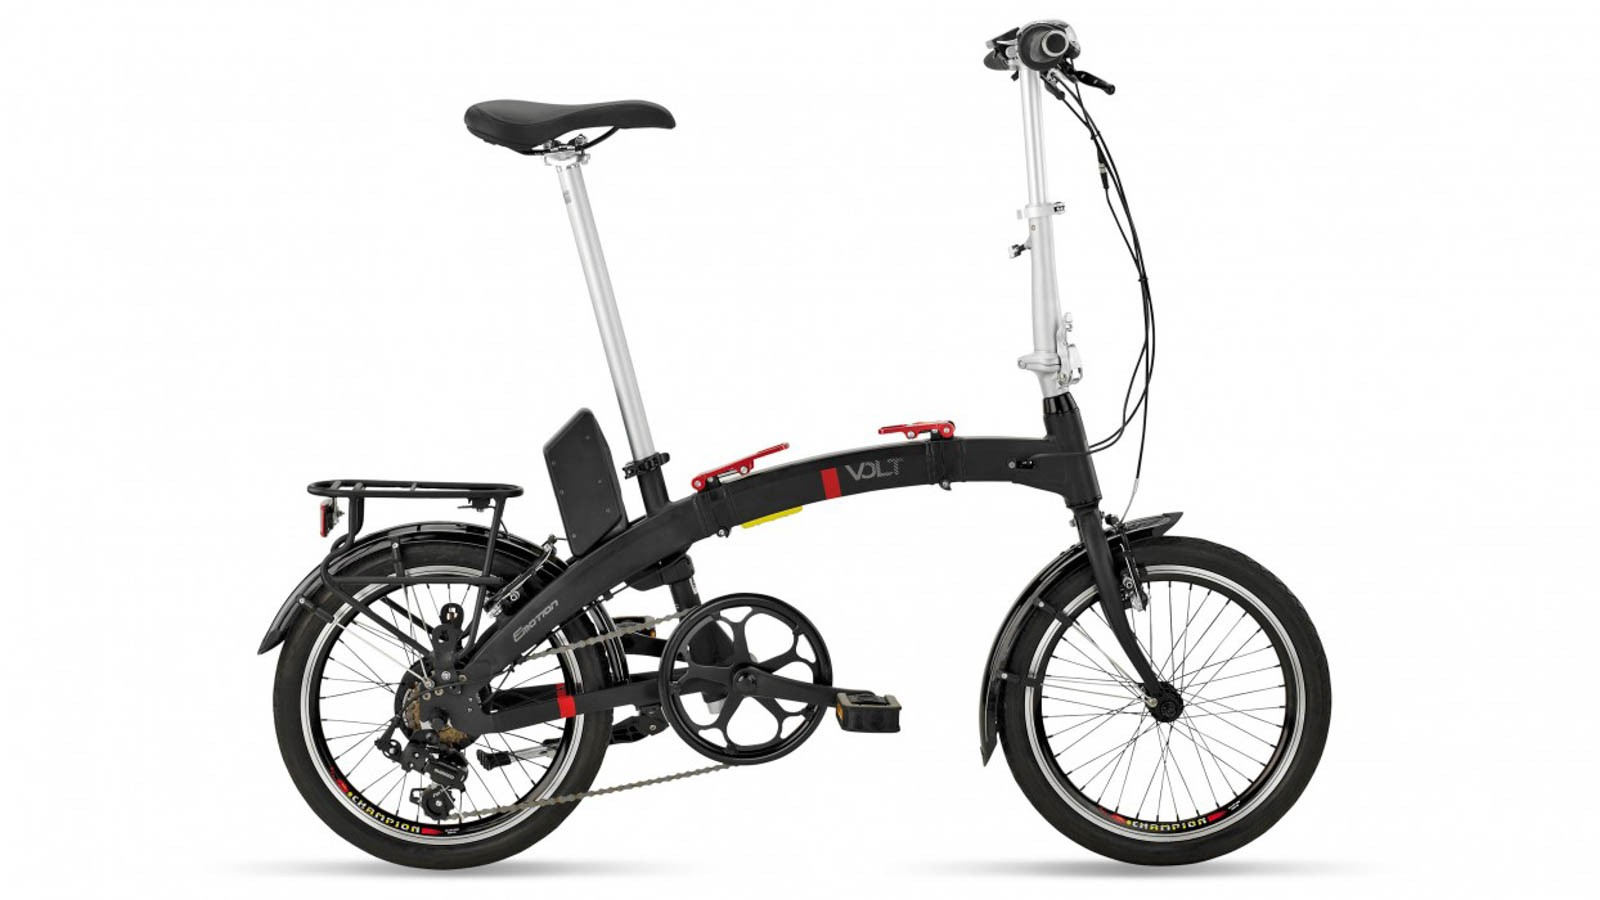 The BH EasyGo Volt has a slightly smaller claimed range than the Tern Vektron and comes in a lot cheaper and lighter